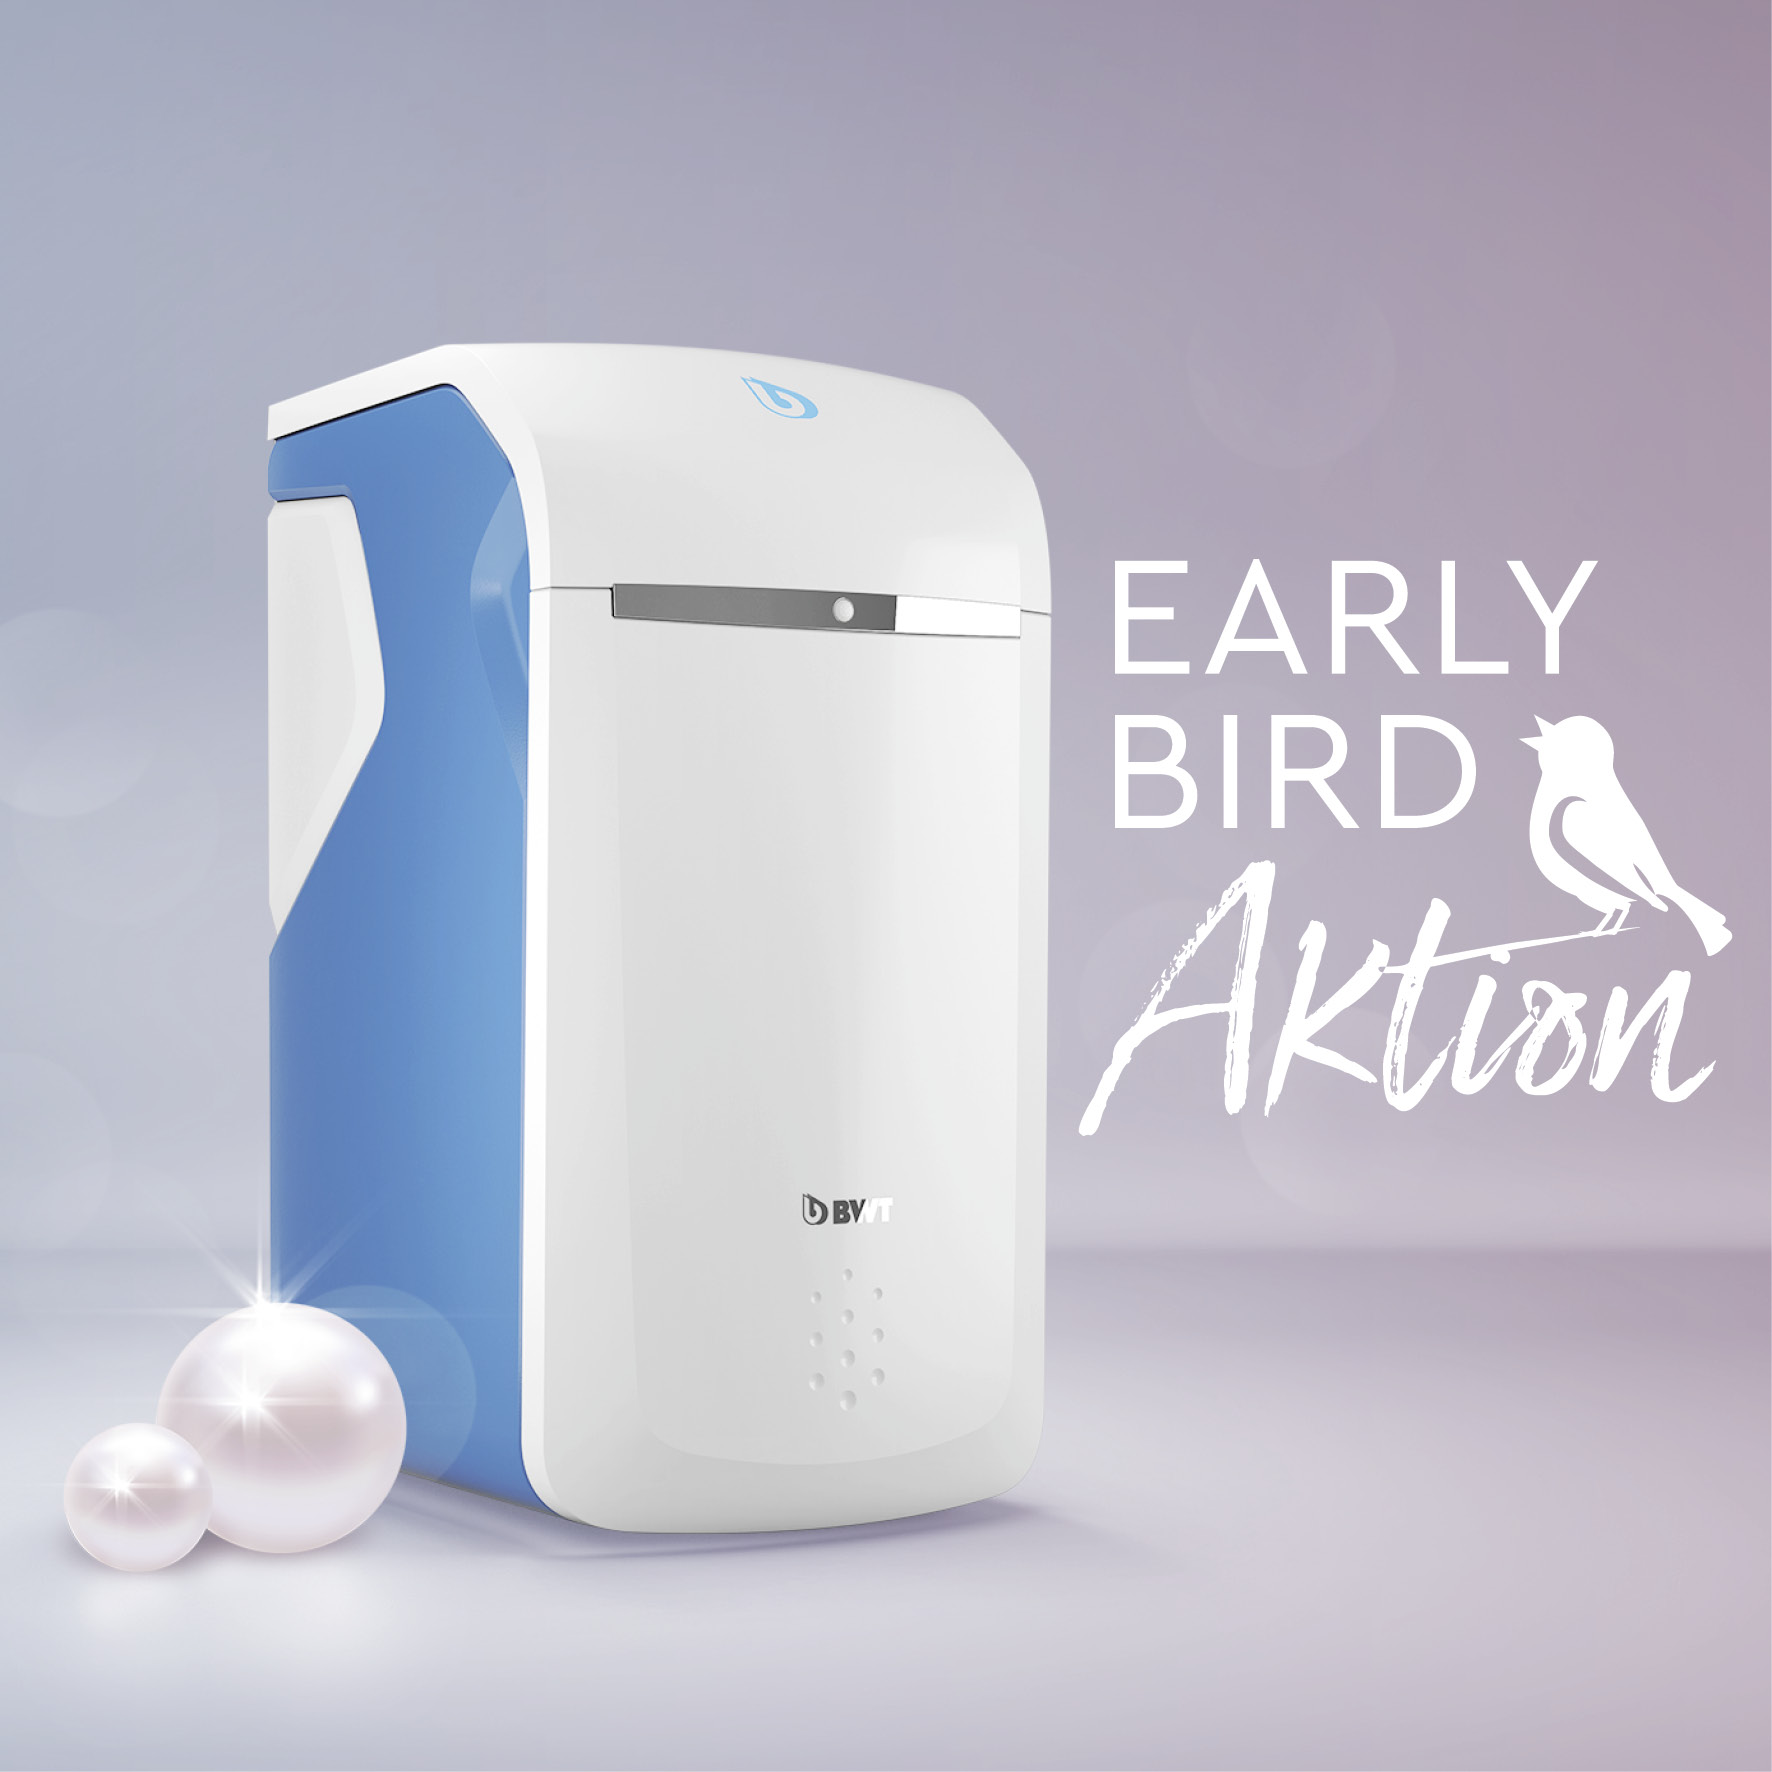 BWT Perla Wasserenthärung Early Bird Aktion